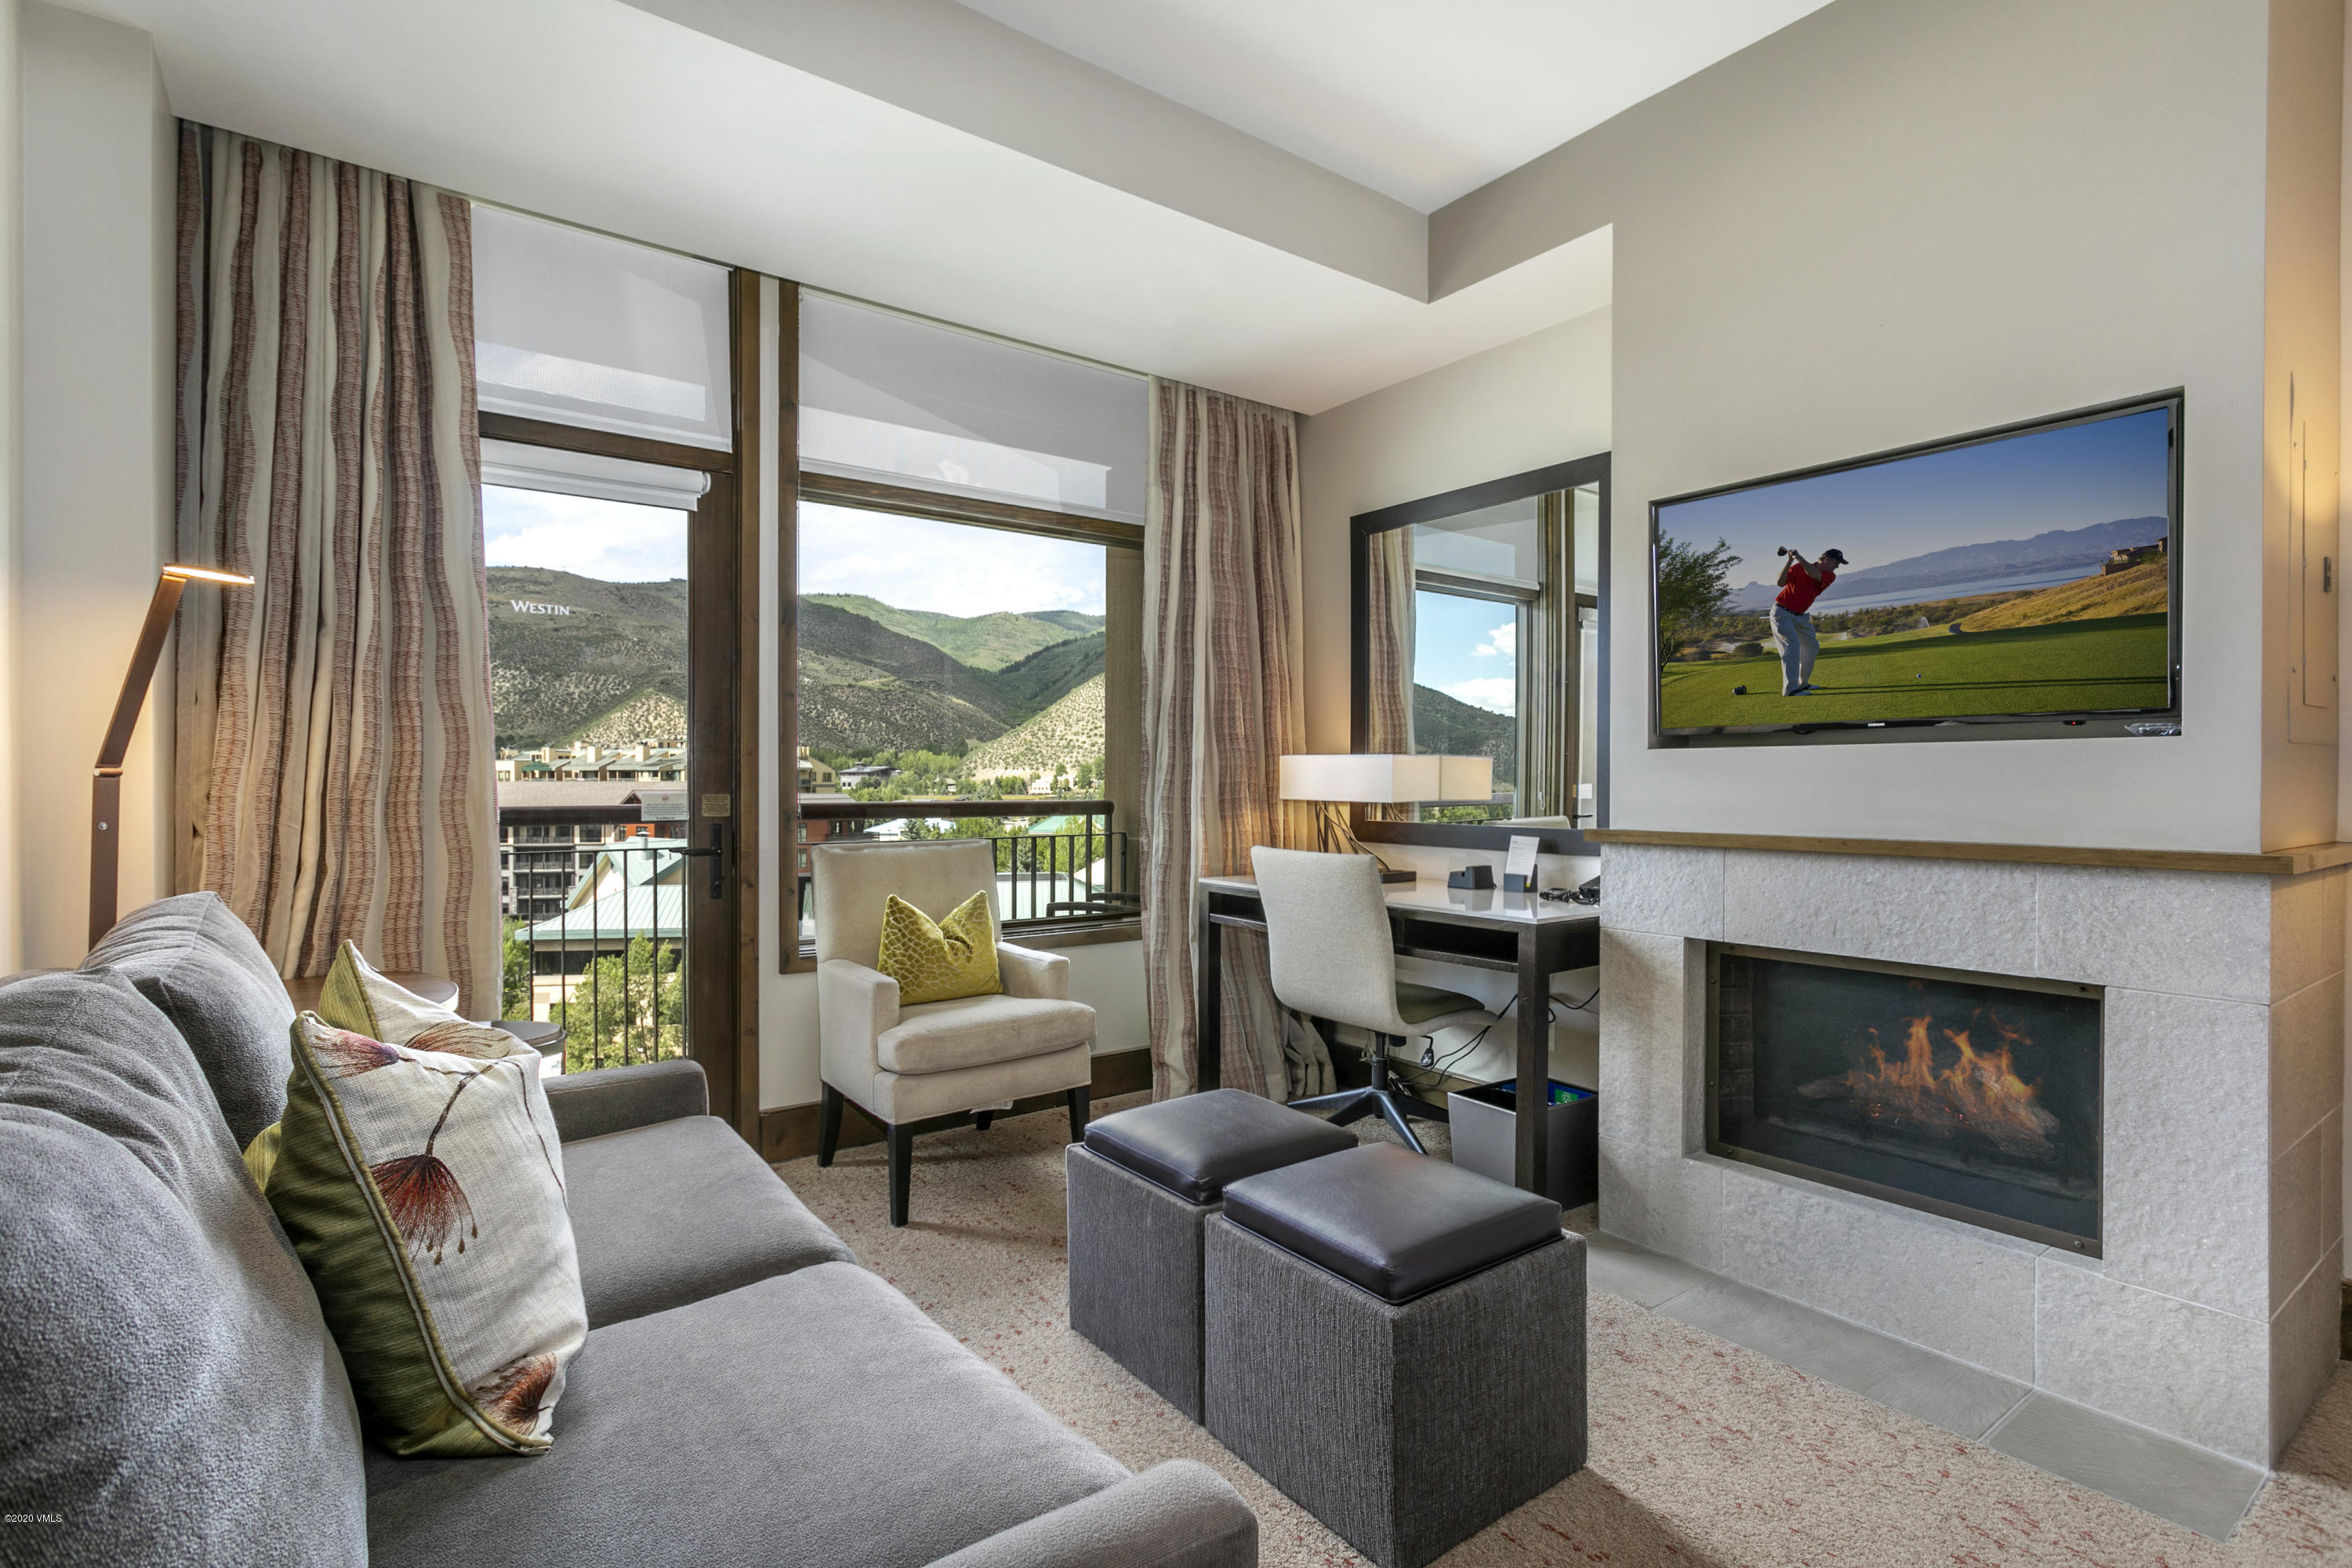 High floor studio plus with outstanding northerly mountain views located in the Westin. Fantastic amenities include access to Beaver Creek ski resort via the Riverfront Gondola, well appointed health club & spa, heated saline swimming pool, and 3 infinity Jacuzzi's overlooking Eagle River.  This property boasts a delicious on site restaurant(Maya) with authentic spanish cuisine as well as a Starbucks and Lift Cafe.  Don't miss this turn key property at the Westin Riverfront Resort and Spa with a  gorgeous lobby, excellent front desk/concierge services with an outstanding location in the heart of Avon Colorado!